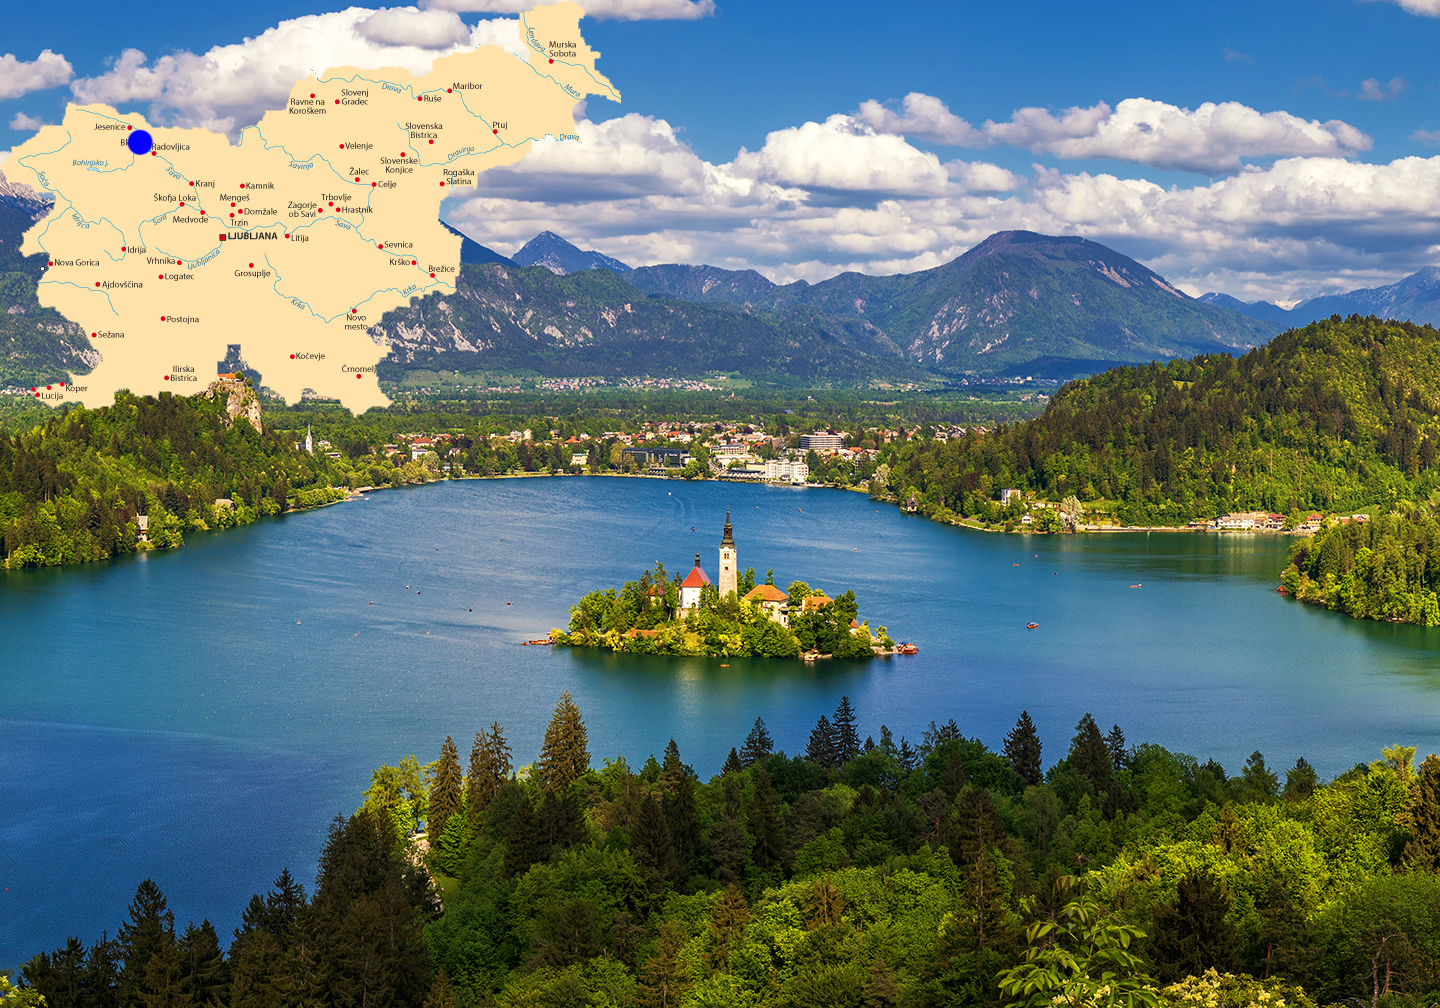 A picture of Lake Bled with a map of Slovenia added to the top left of the photo.